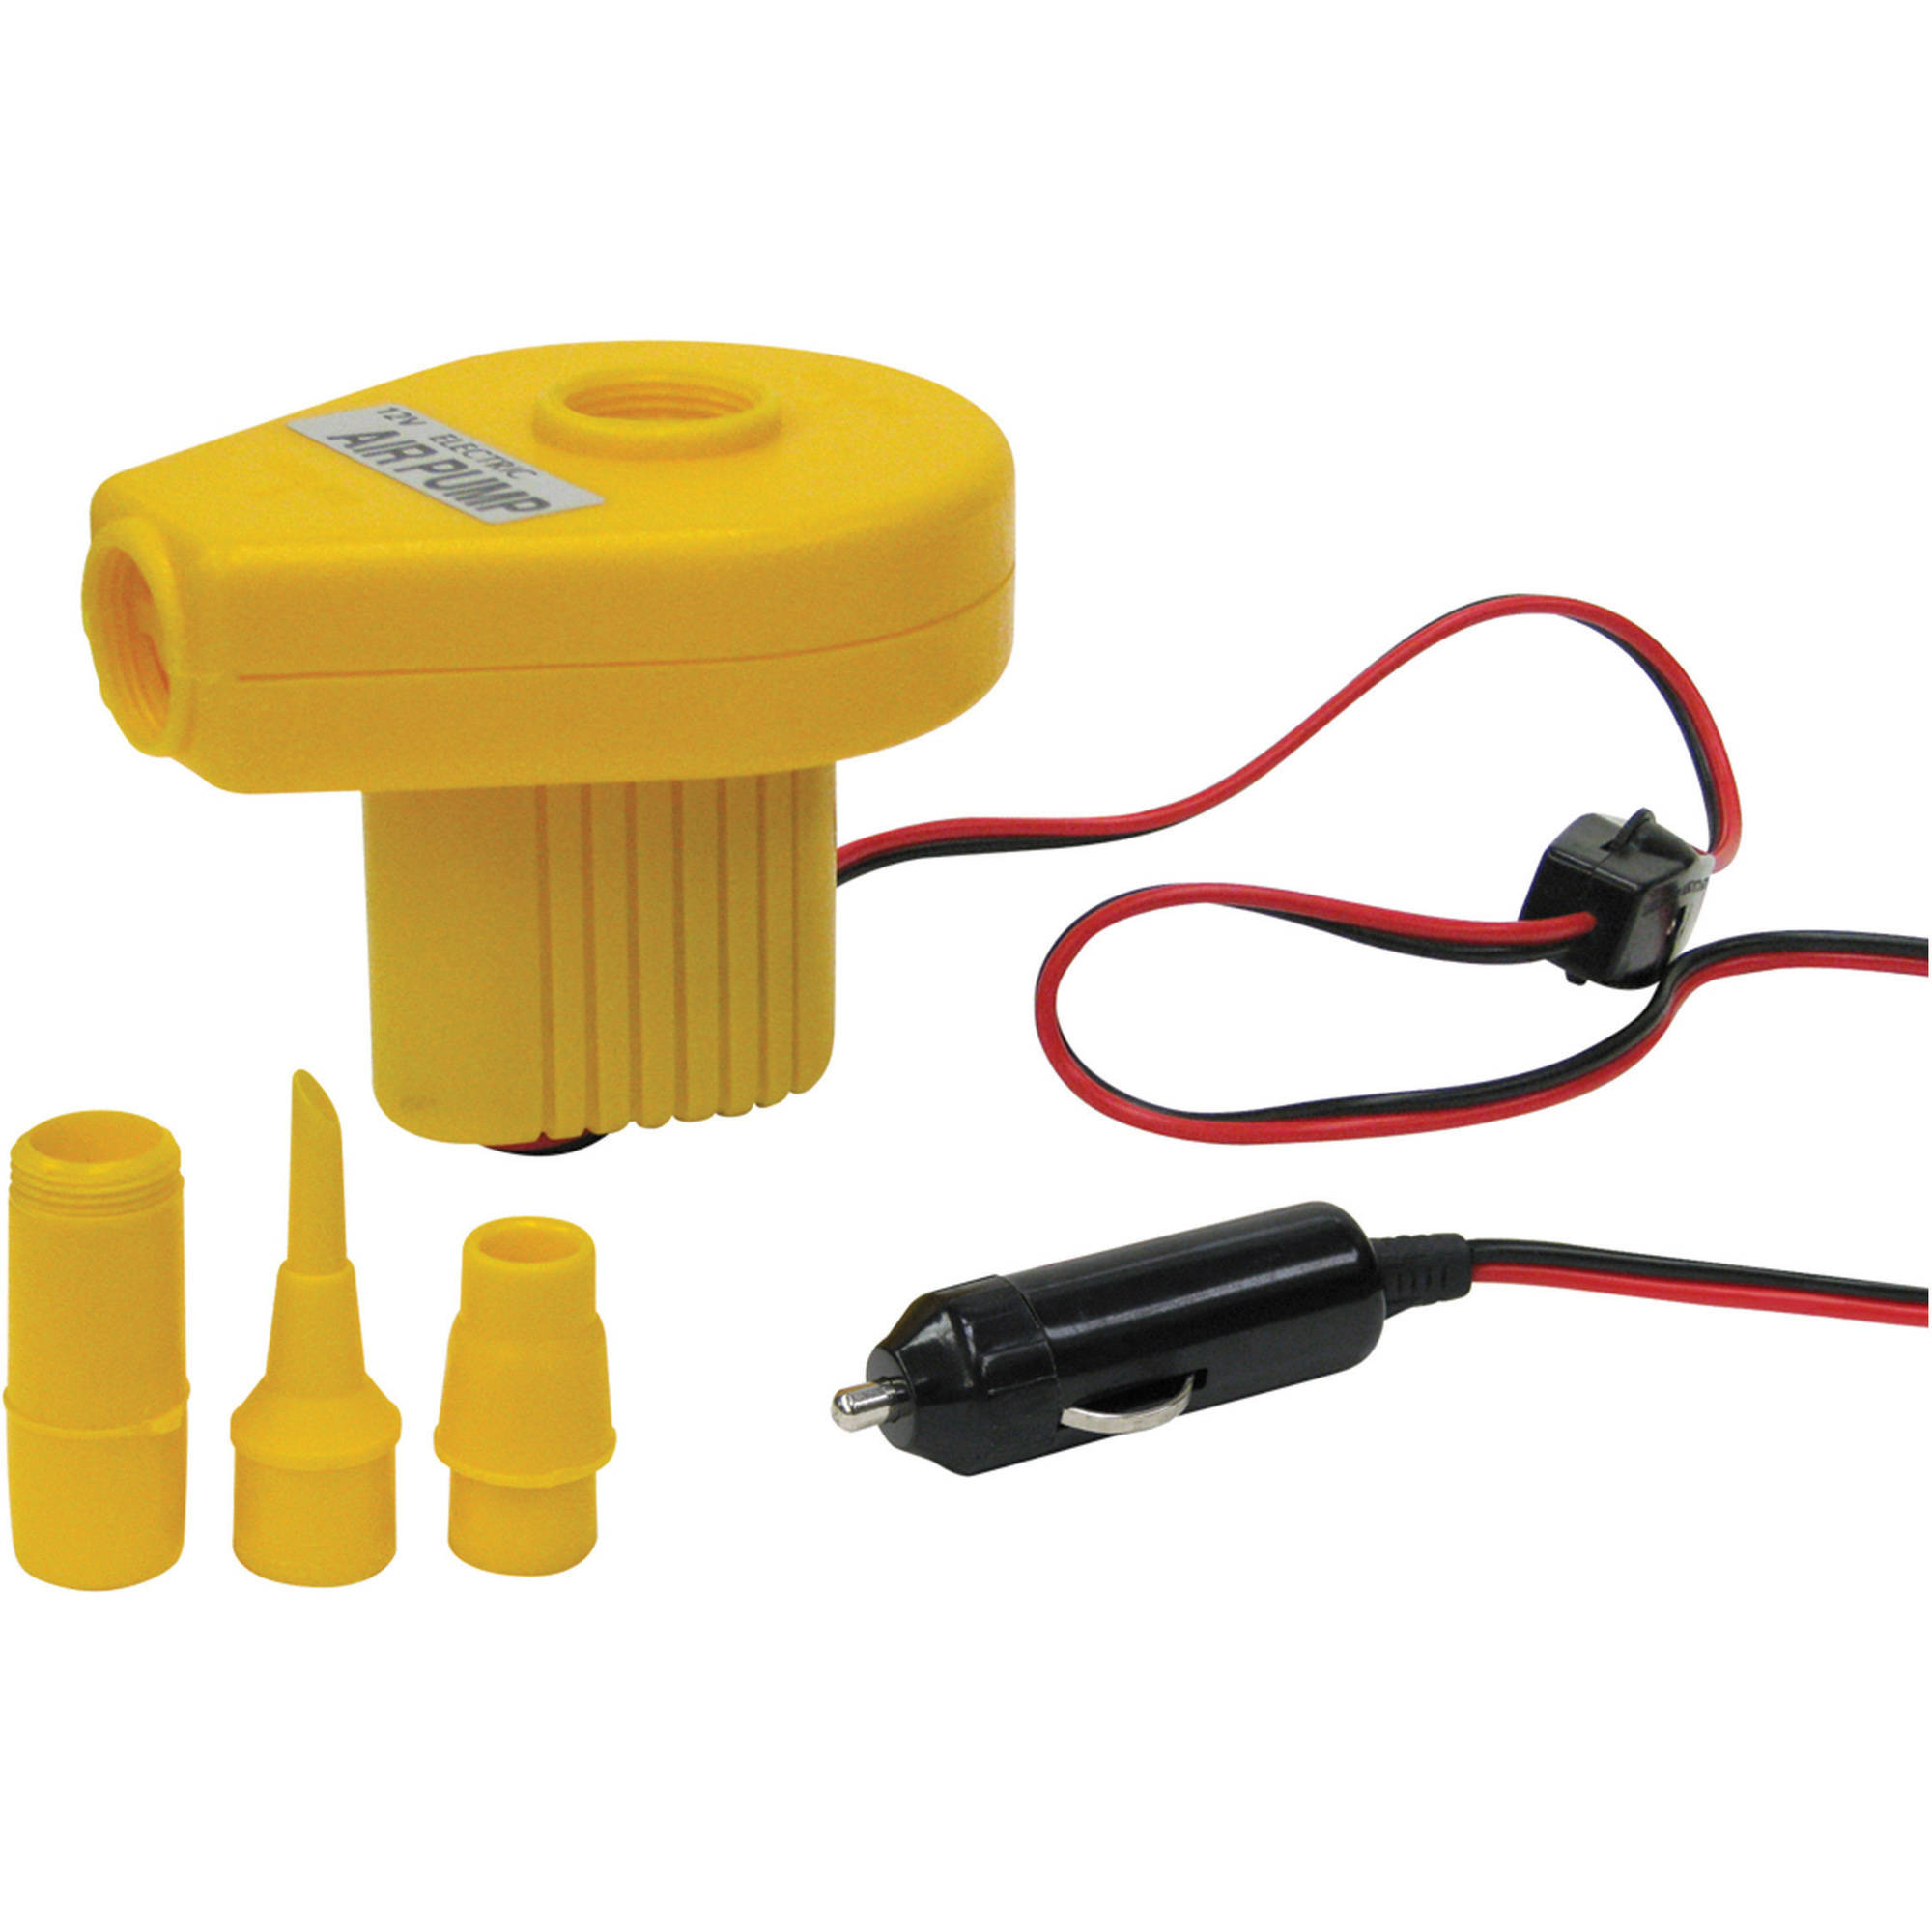 Stansport Portable Air Pump, 12 Volt by Stansport